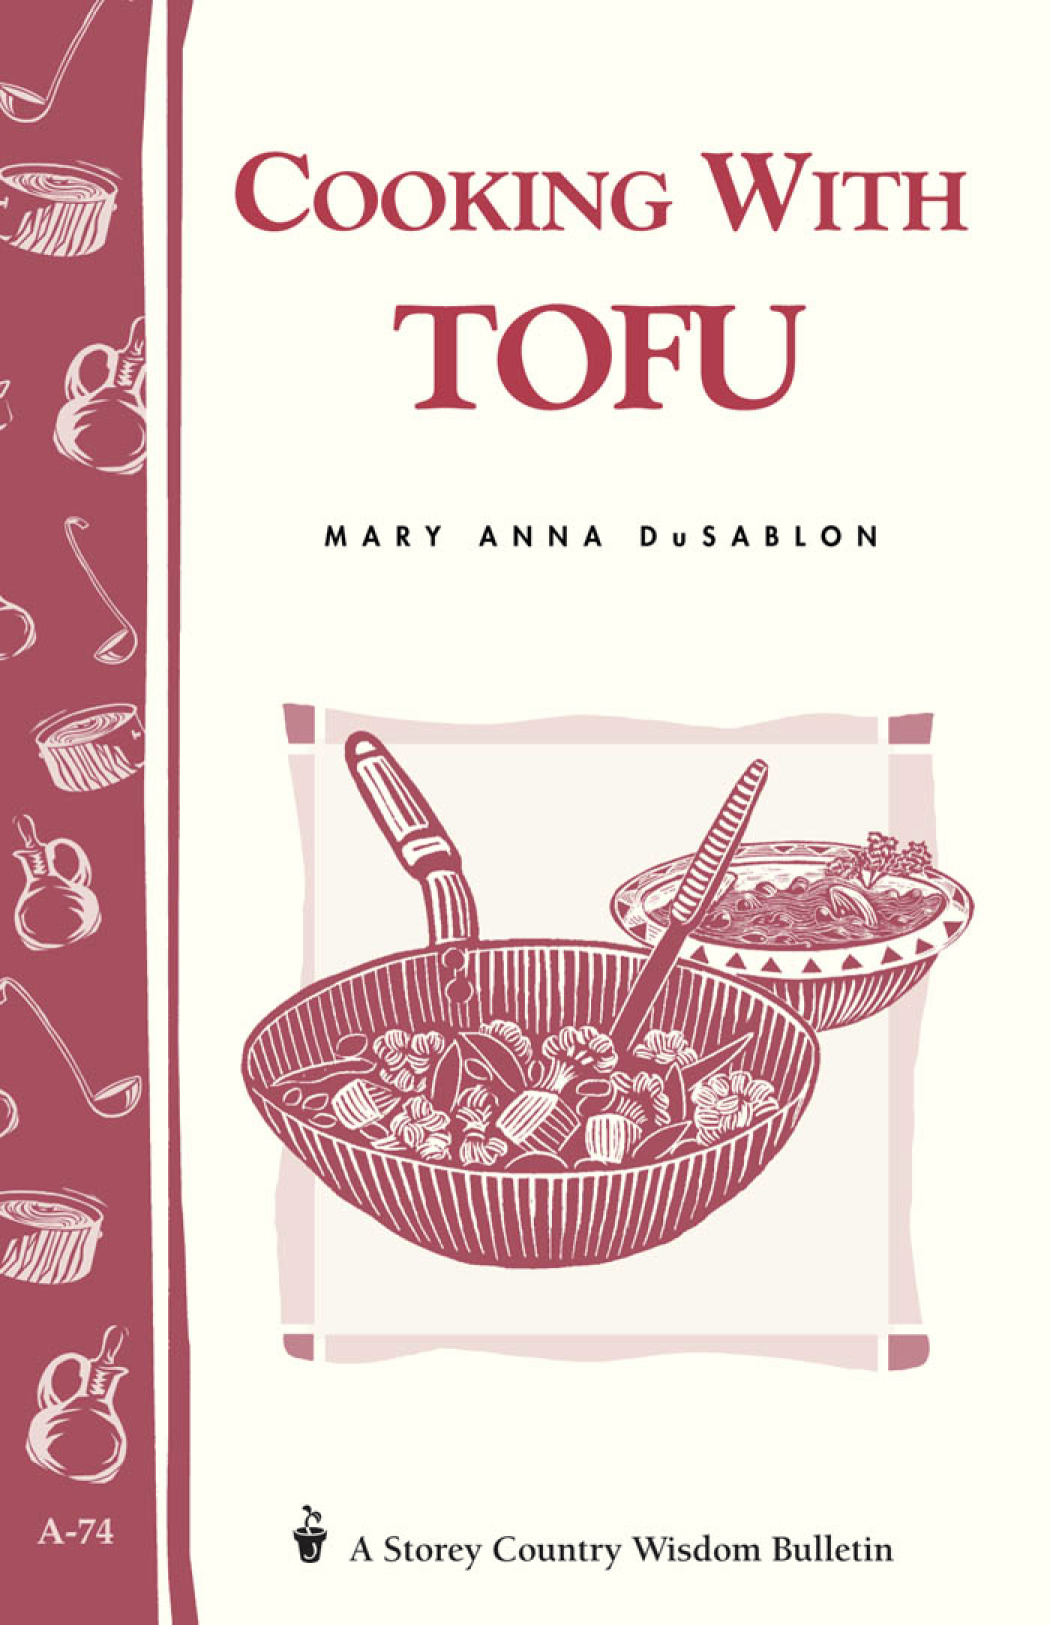 Cooking with Tofu Storey Country Wisdom Bulletin A-74 - Mary Anna Dusablon